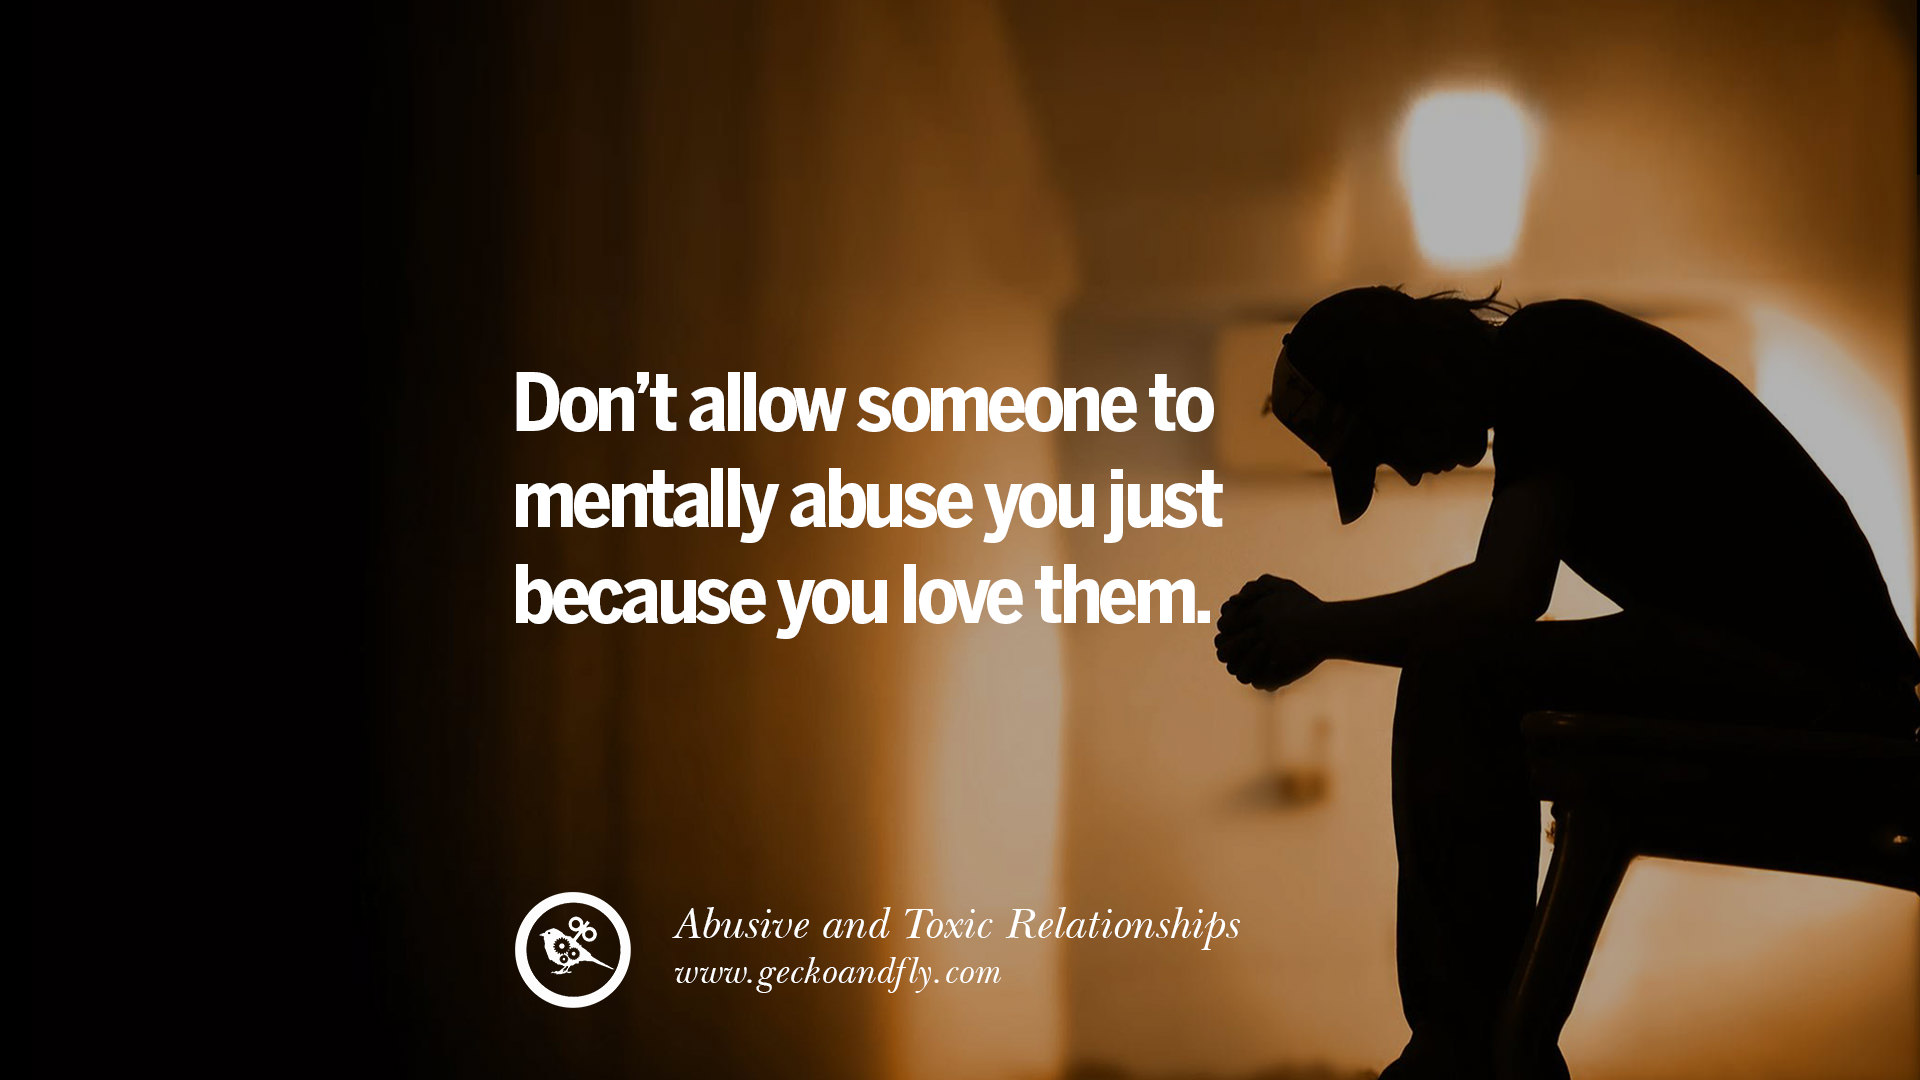 Donu0027t Allow Someone To Mentally Abuse You Just Because You Love Them.